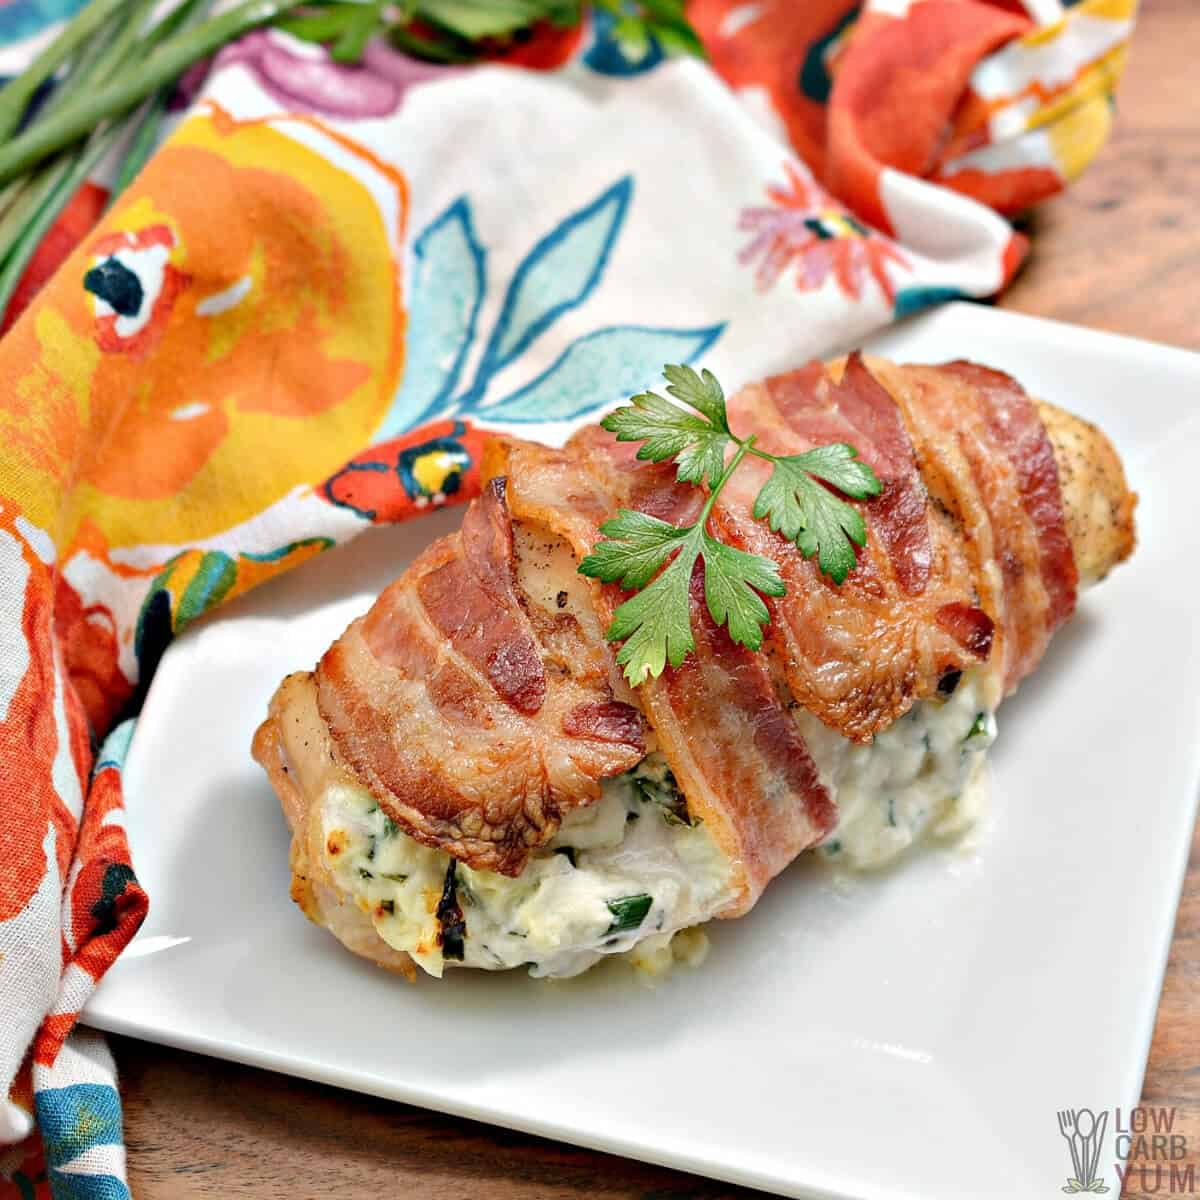 cream cheese stuffed chicken on plate